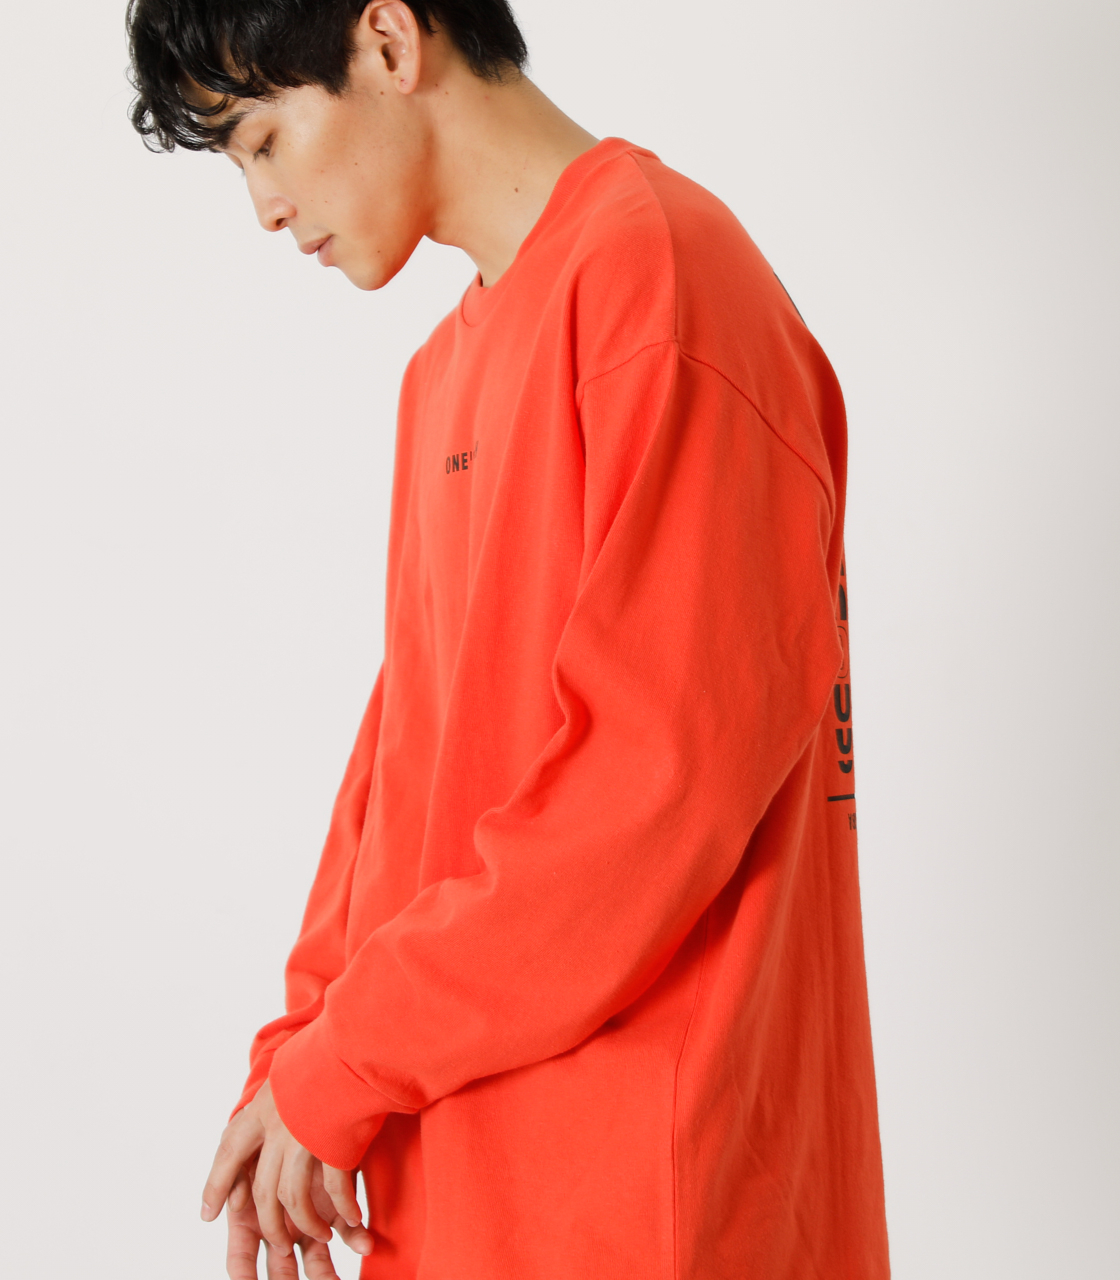 ONE'S HIGH LONG TEE/ワンズハイロングTシャツ 詳細画像 D/ORG 3